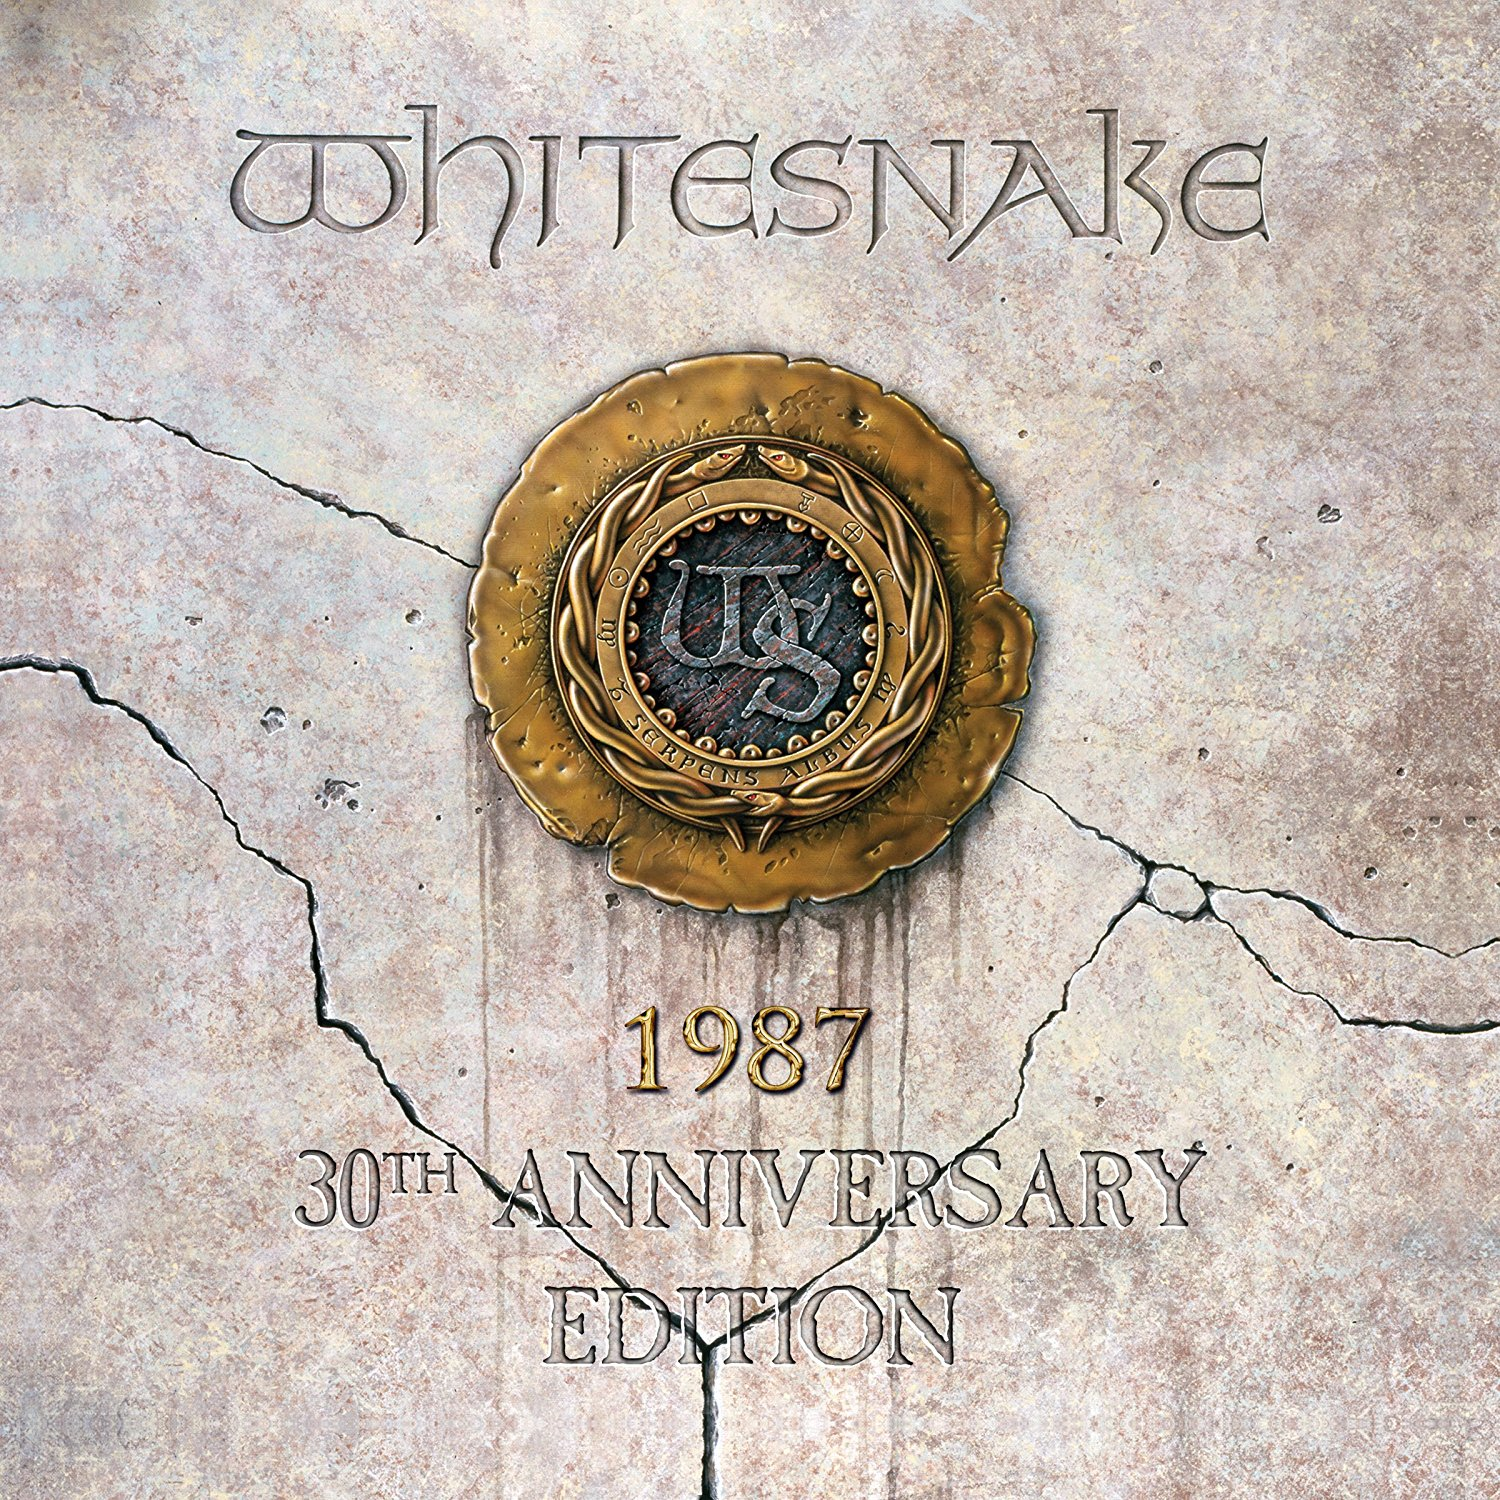 Super Snake 2017 >> Whitesnake - 1987 (30th Anniversary Vinyl Record) | MusicZone | Vinyl Records Cork | Vinyl ...